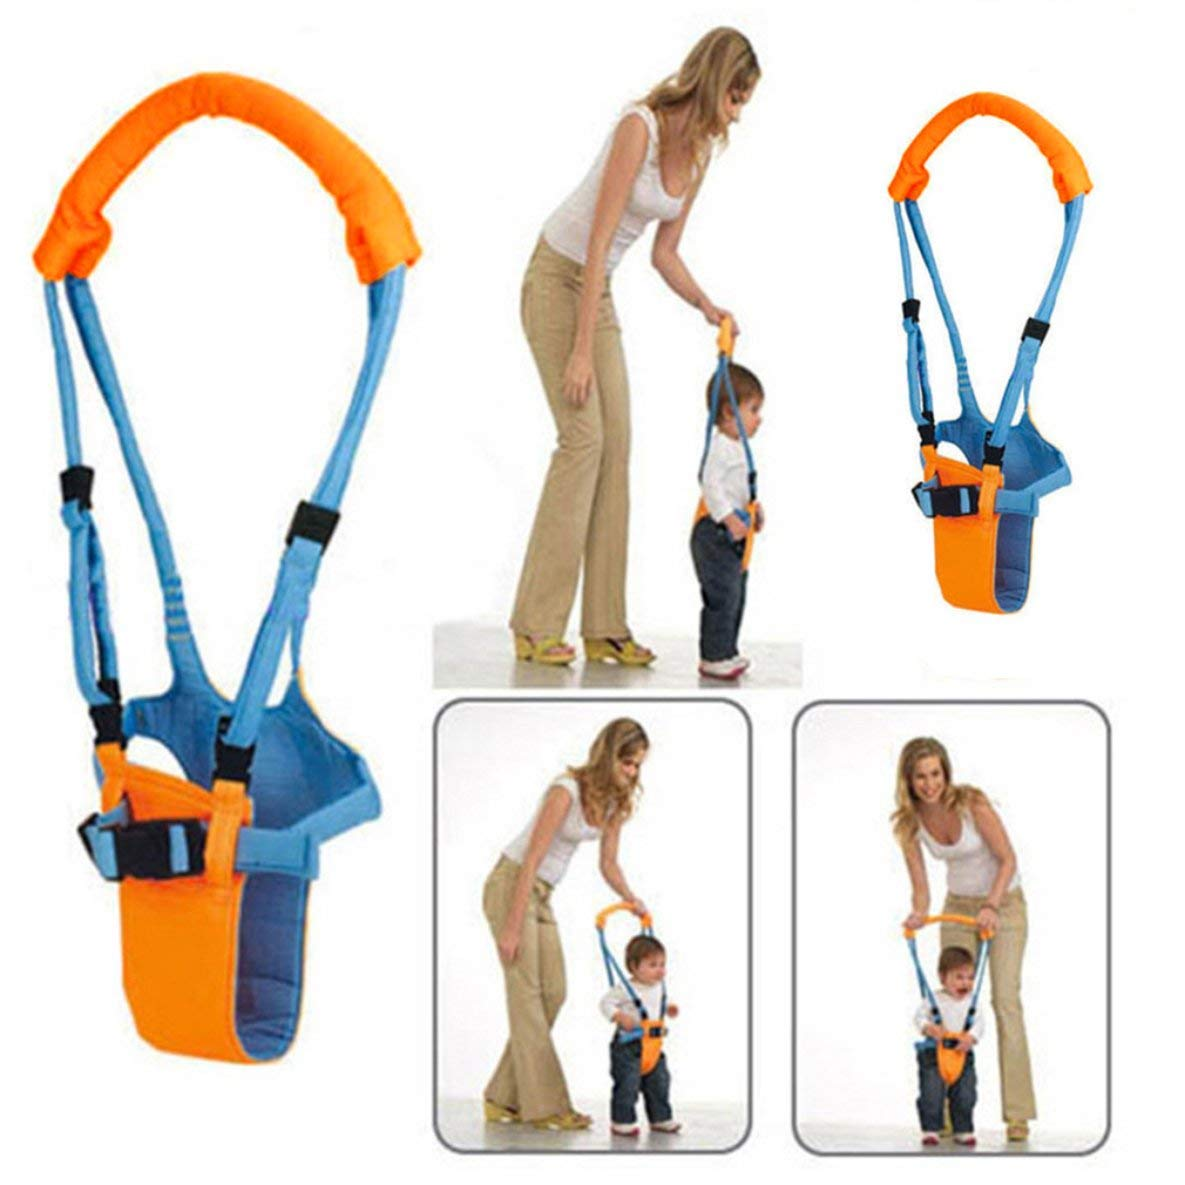 4 In 1 Functional Safety Walking Walker Harness for Baby 7-24 Month Noradtjcca Baby Walking Assistant Toddler Walking Harness Handle Baby Walker,Standing Up and Walking Learning Helper for Baby